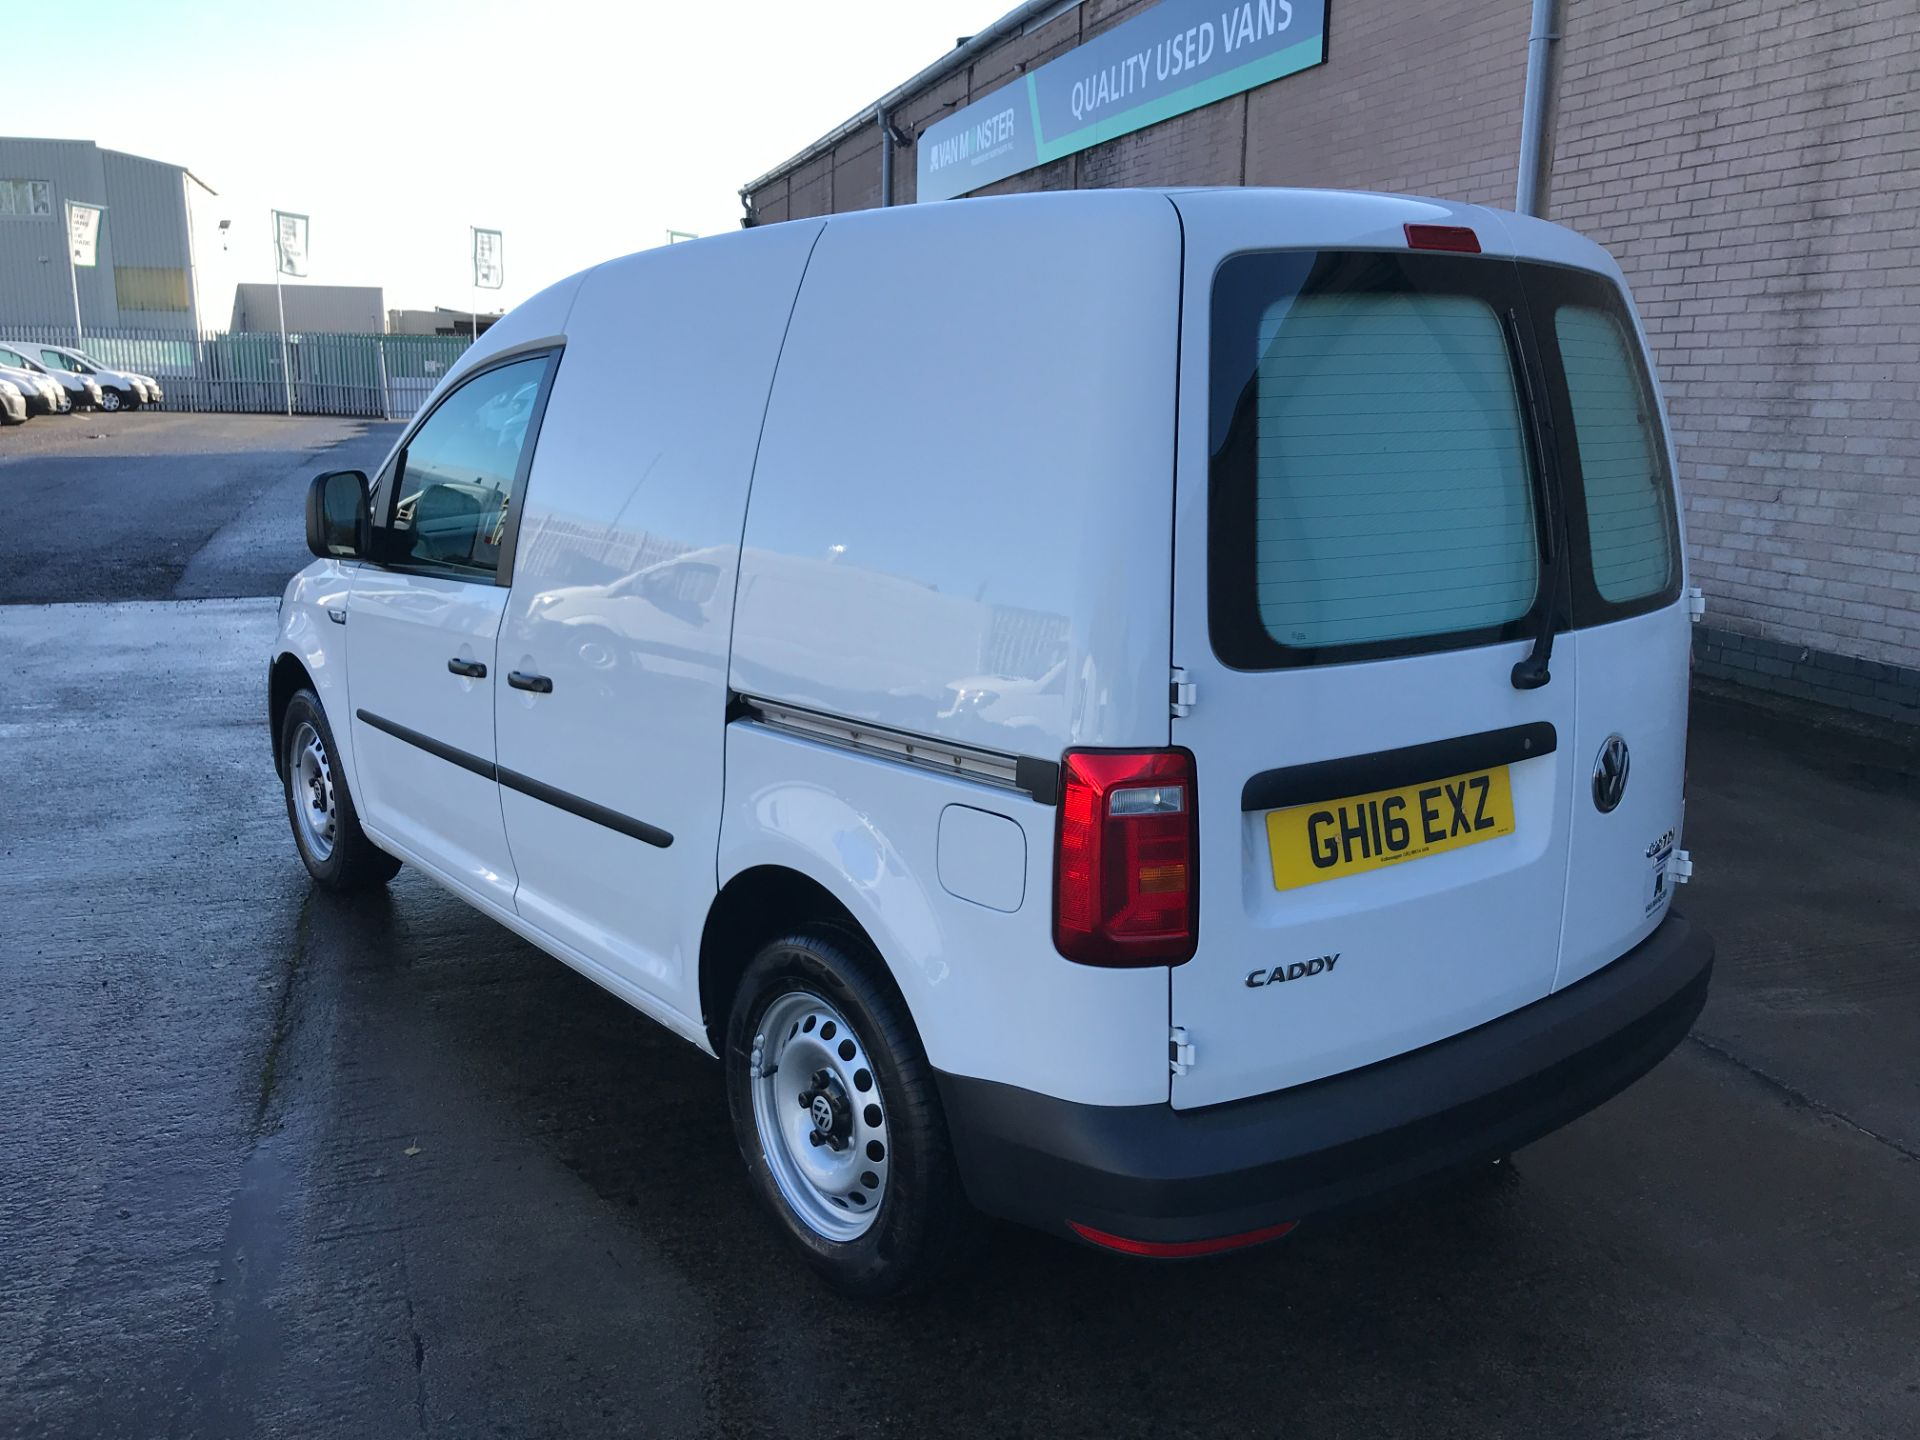 2016 Volkswagen Caddy 2.0TDI BLUEMOTION TECH 102PS STARTLINE EURO 6, NO VAT  (GH16EXZ) Image 12